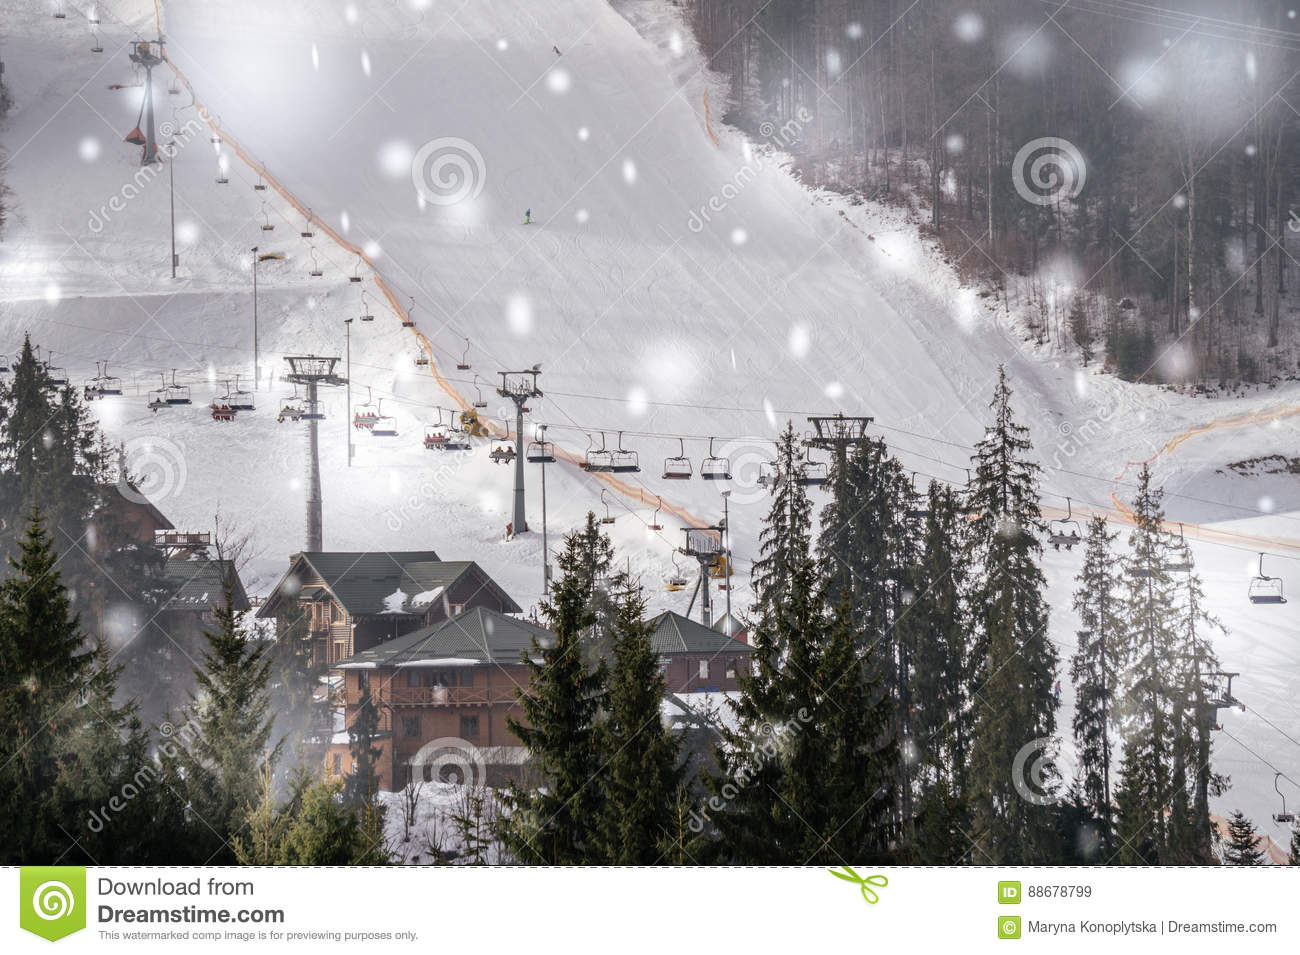 winter tourism in eastern europe. modern ski lift on a background of